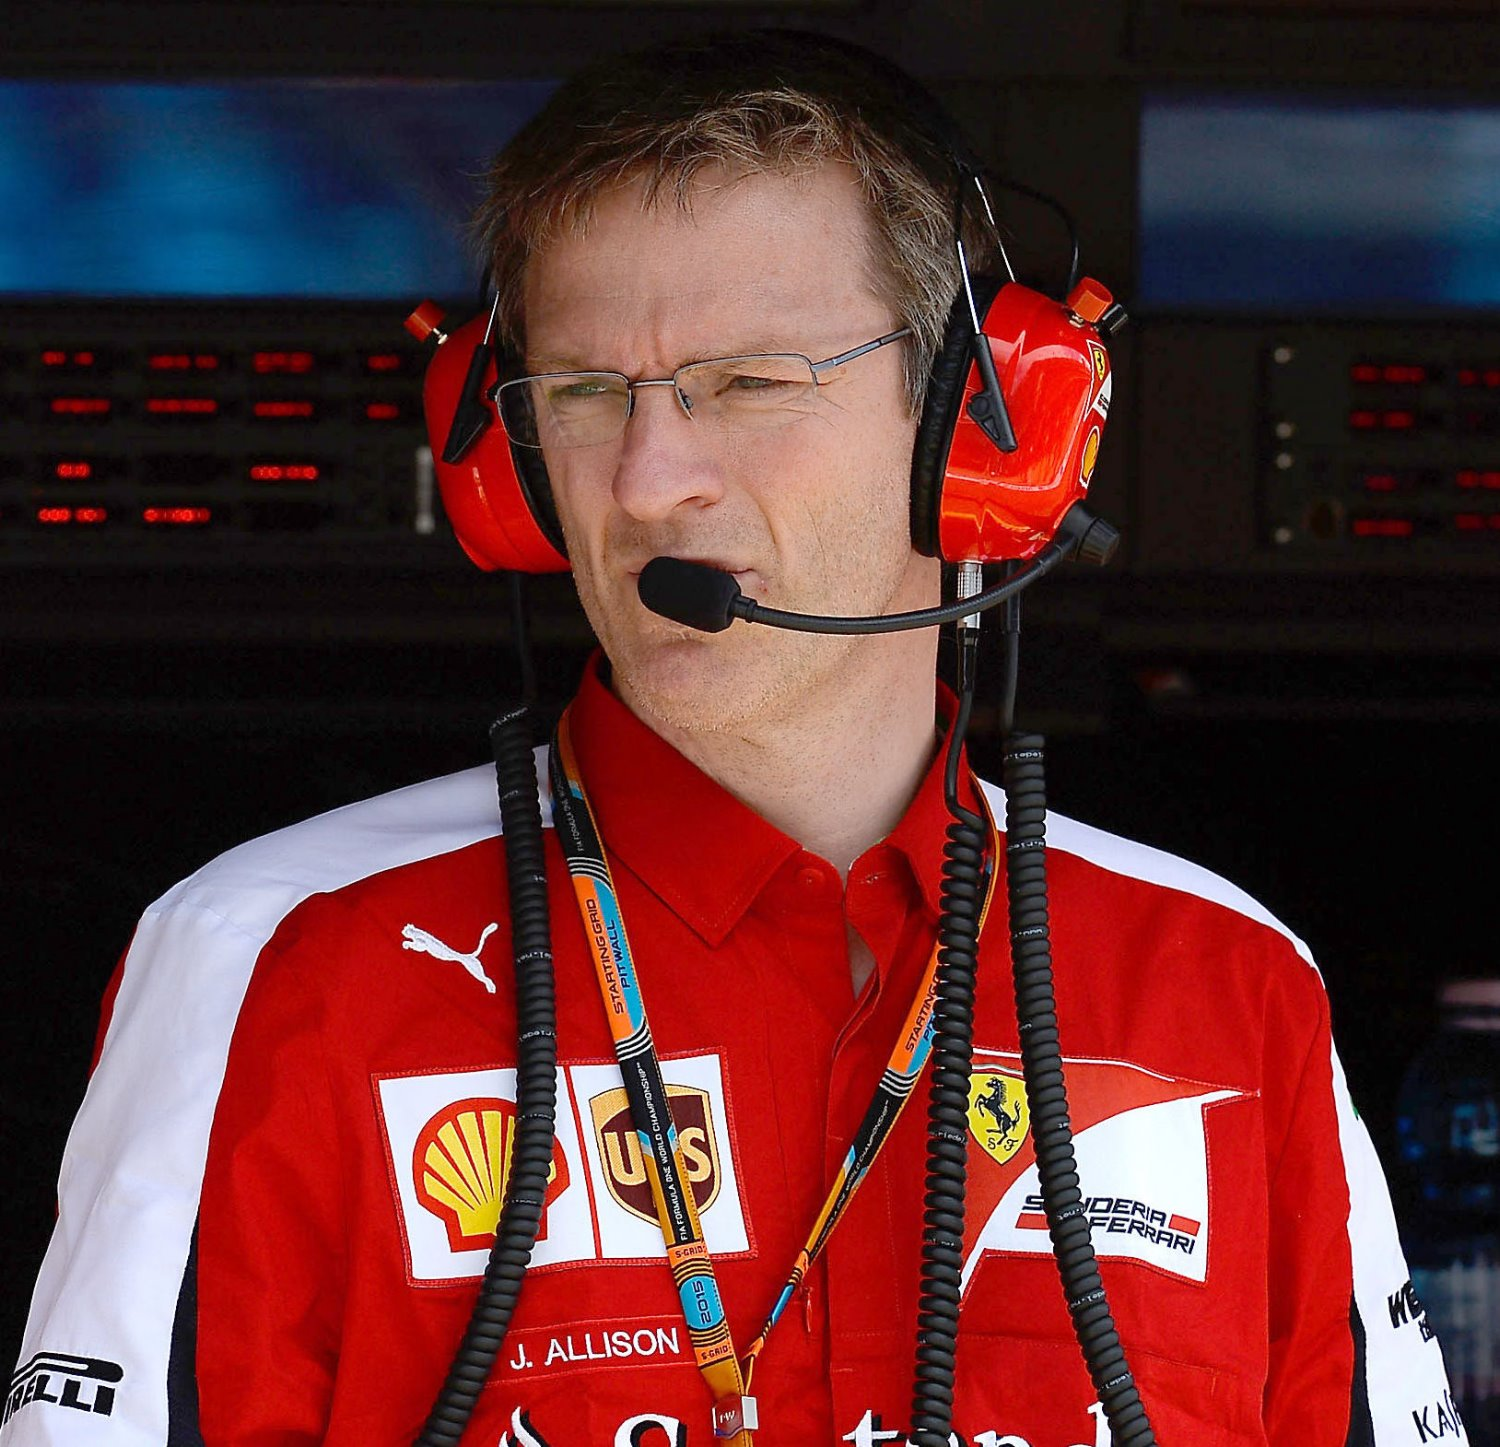 James Allison when at Ferrari